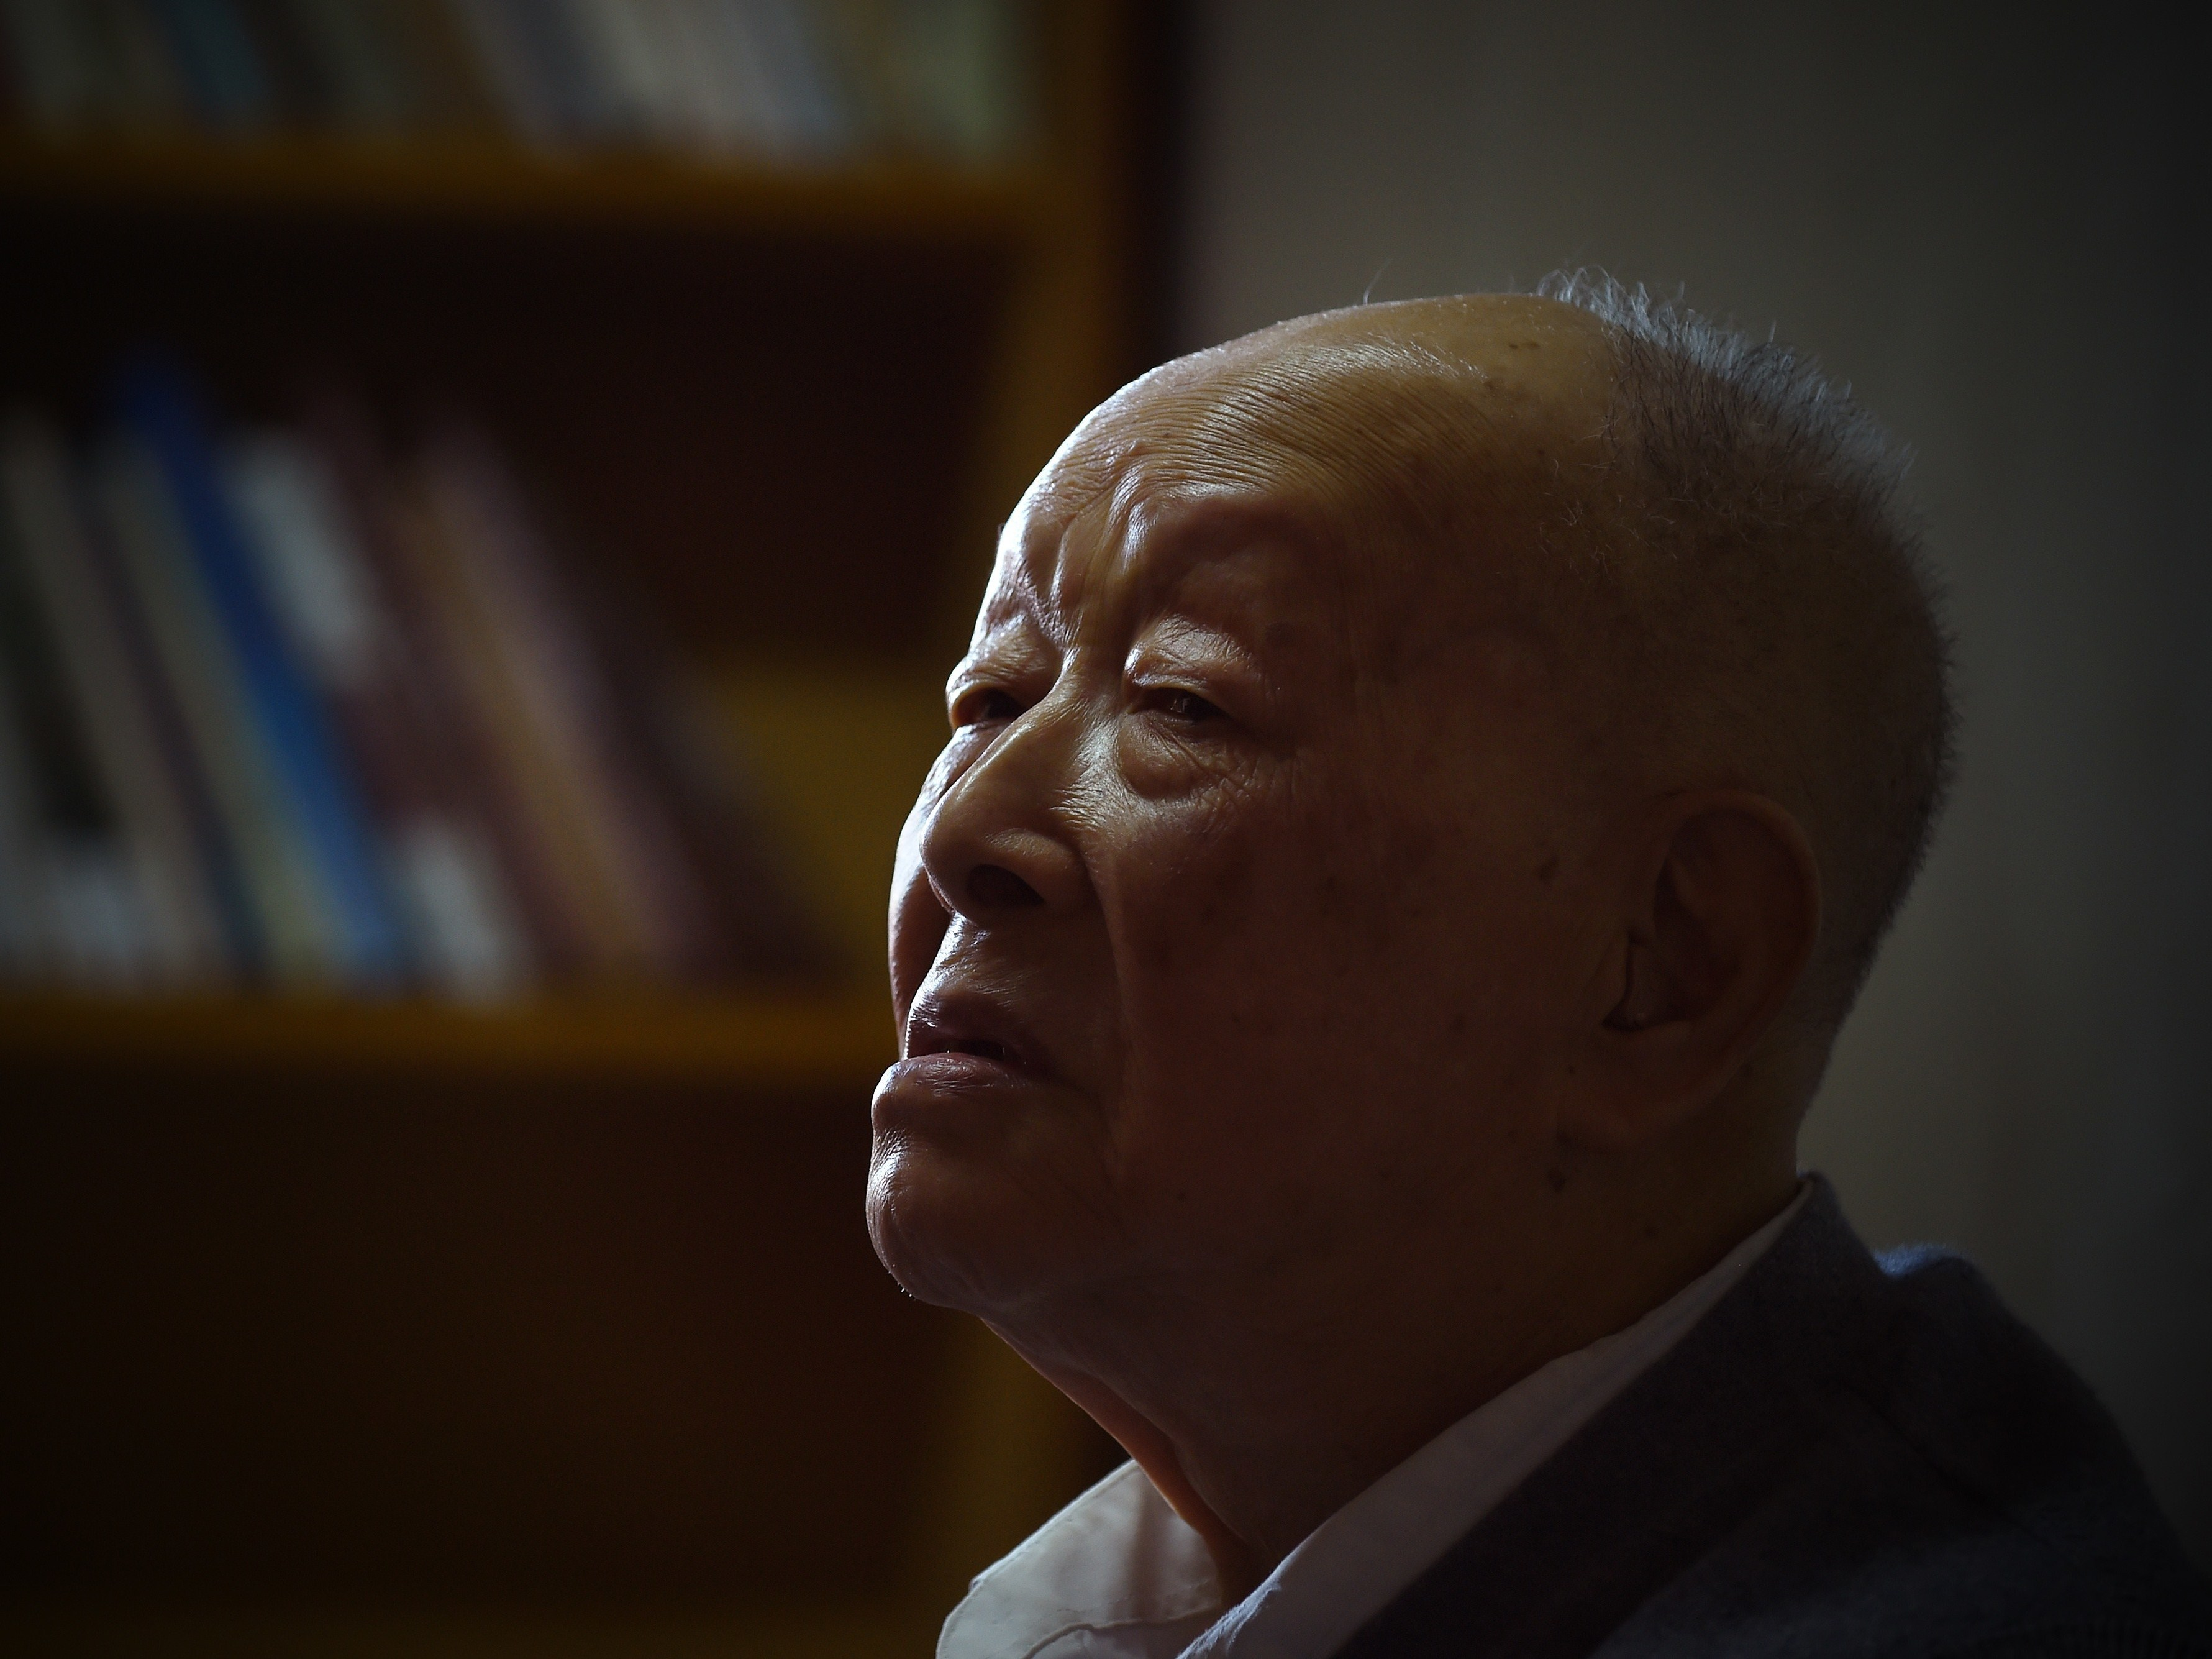 Zhou Youguang, Architect Of A Bridge Between Languages, Dies At 111